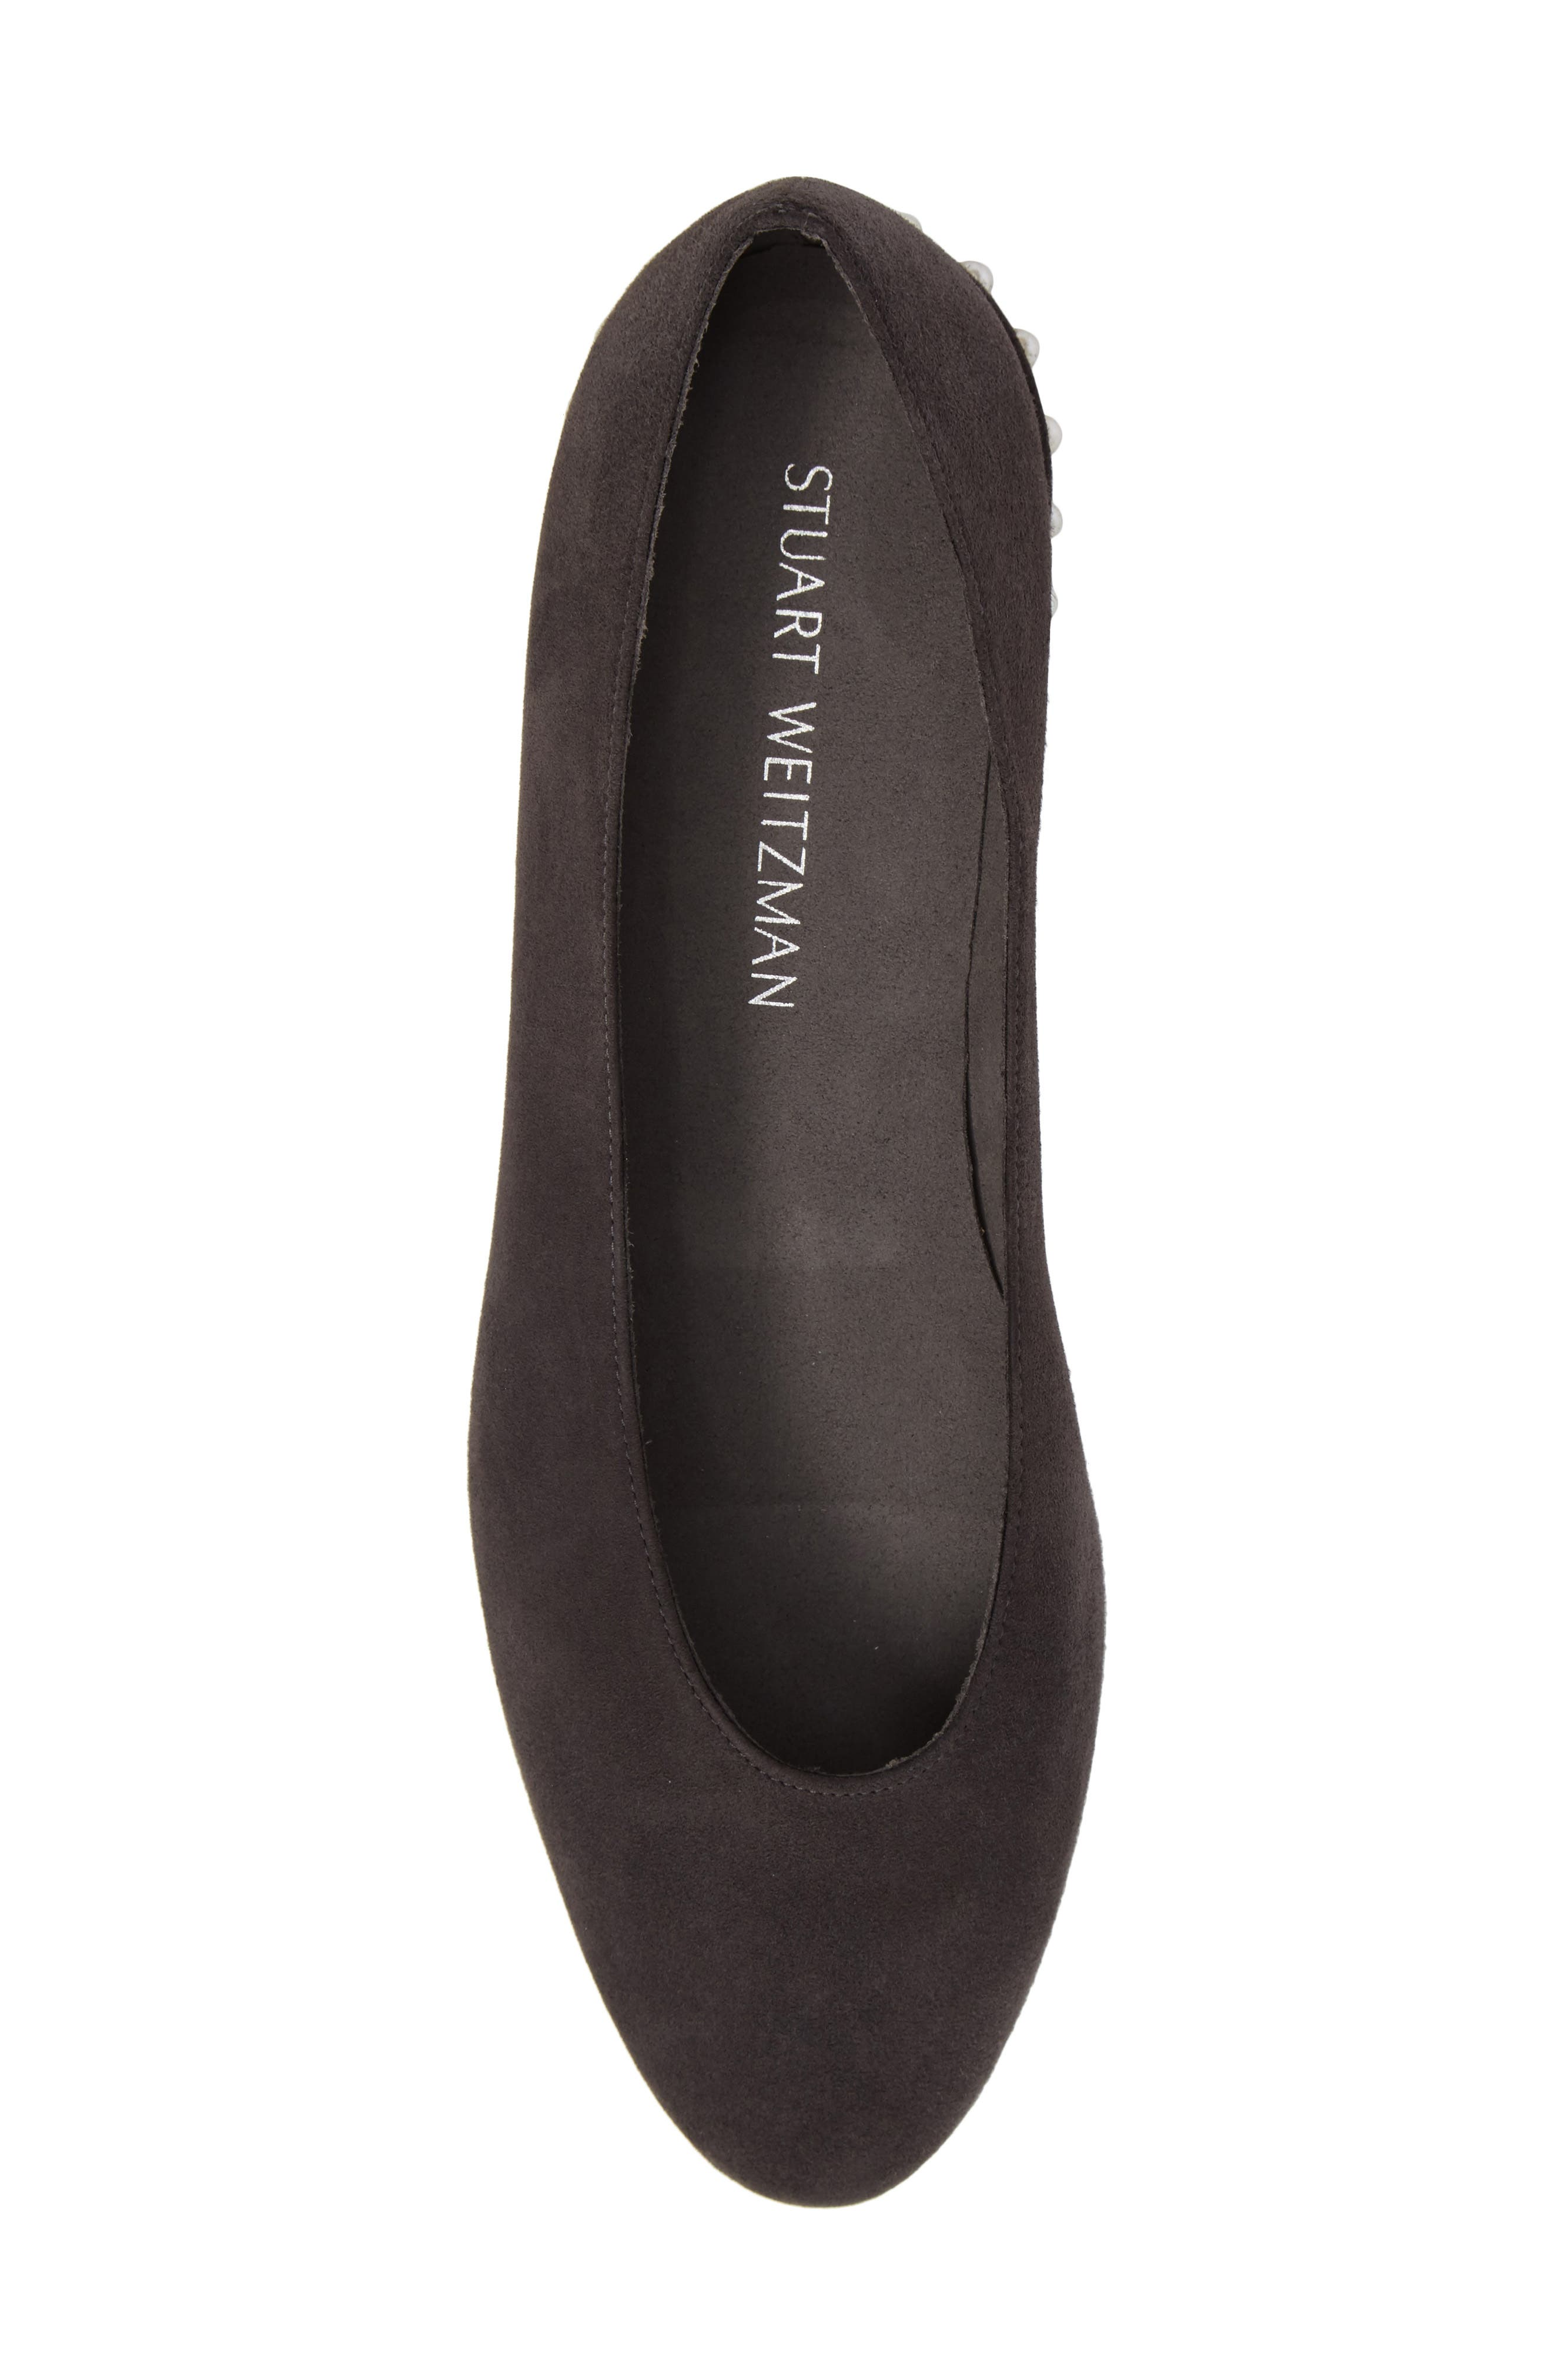 Chicpearl Ballet Flat,                             Alternate thumbnail 5, color,                             020